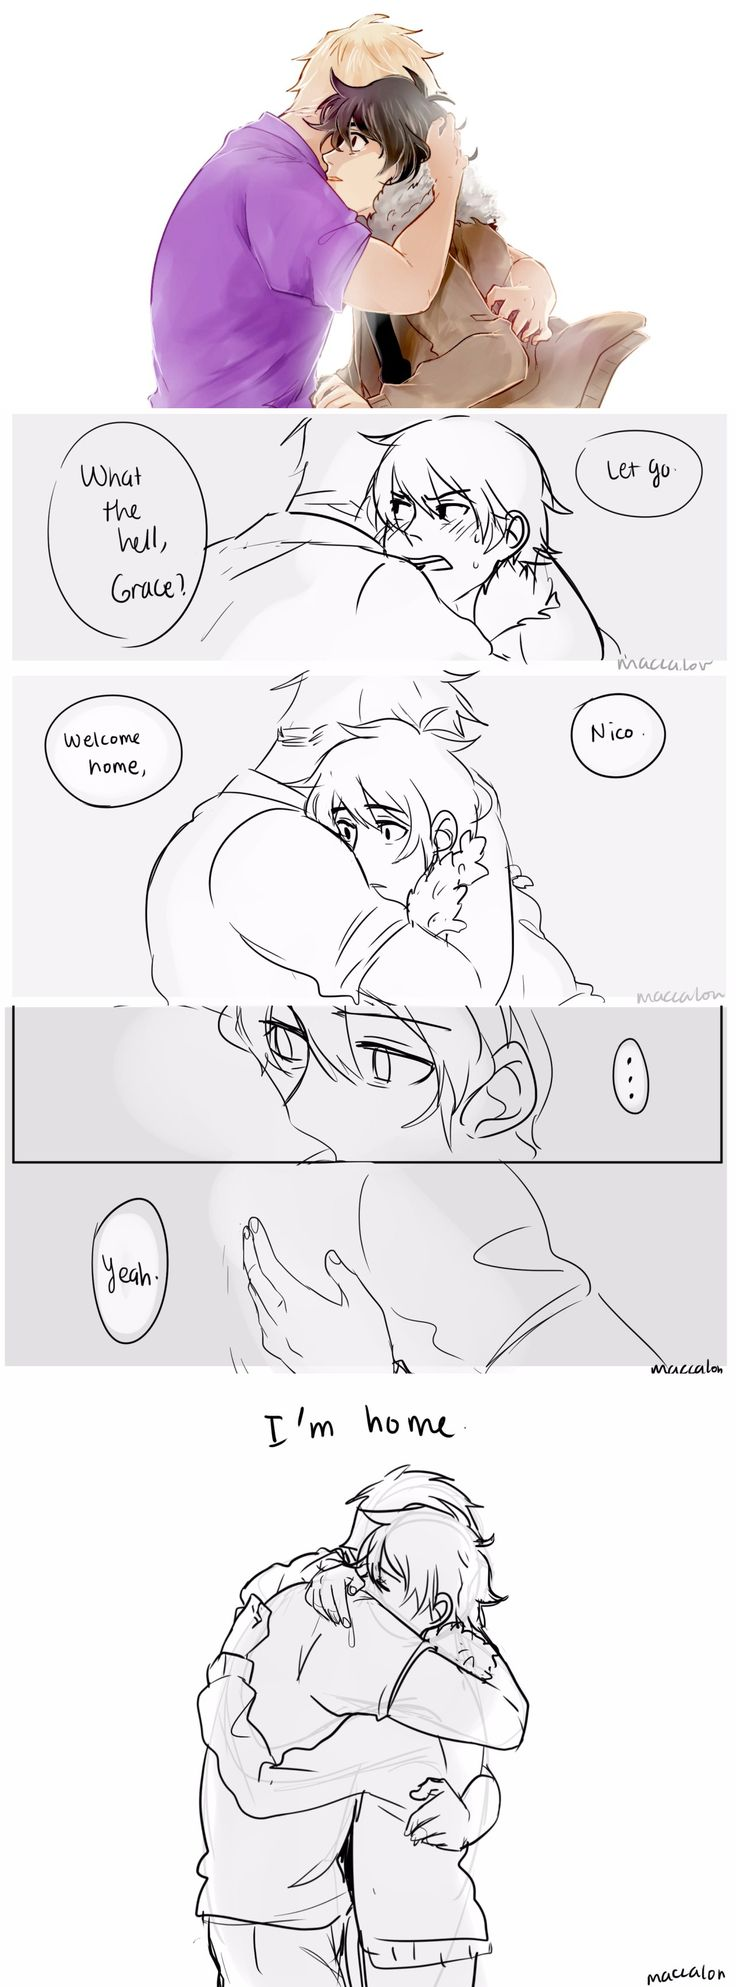 "maccalon: ""I'm staying at Camp Half-Blood.""  Headcanon where Jason just hugged Nico without thinking any longer. And Nico just accepted the hug and drown in it.  finally, a full color proper art of Jasico holy gods bless my soul  bonus short comic after this cut coughs it's really messy tho"